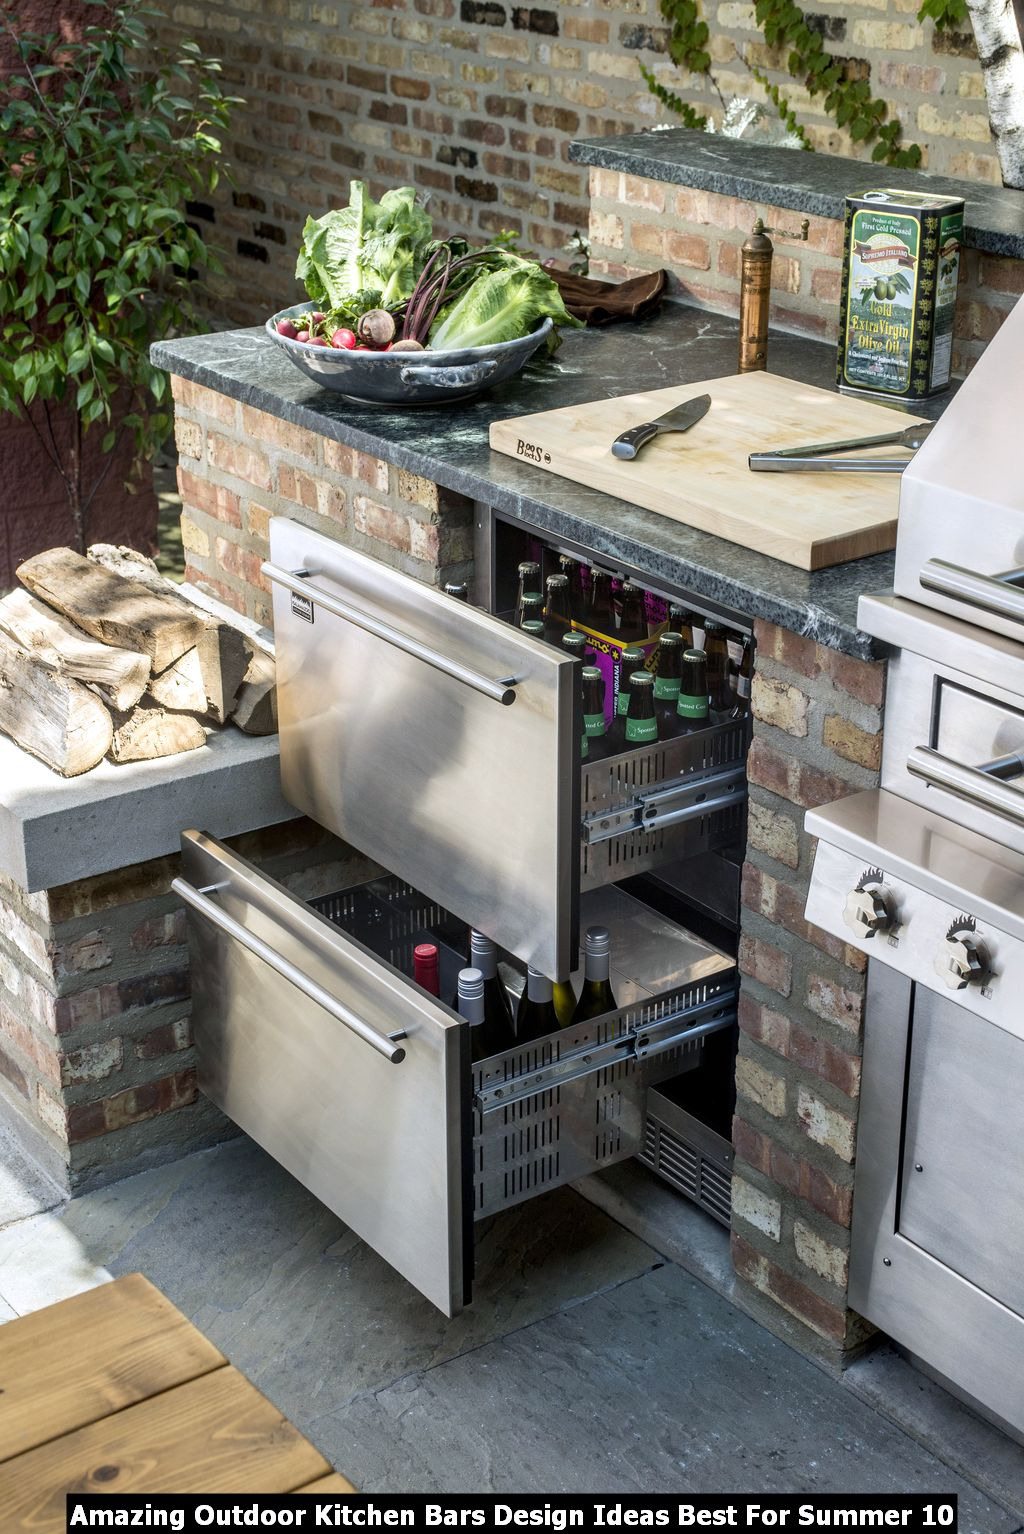 Amazing Outdoor Kitchen Bars Design Ideas Best For Summer 10